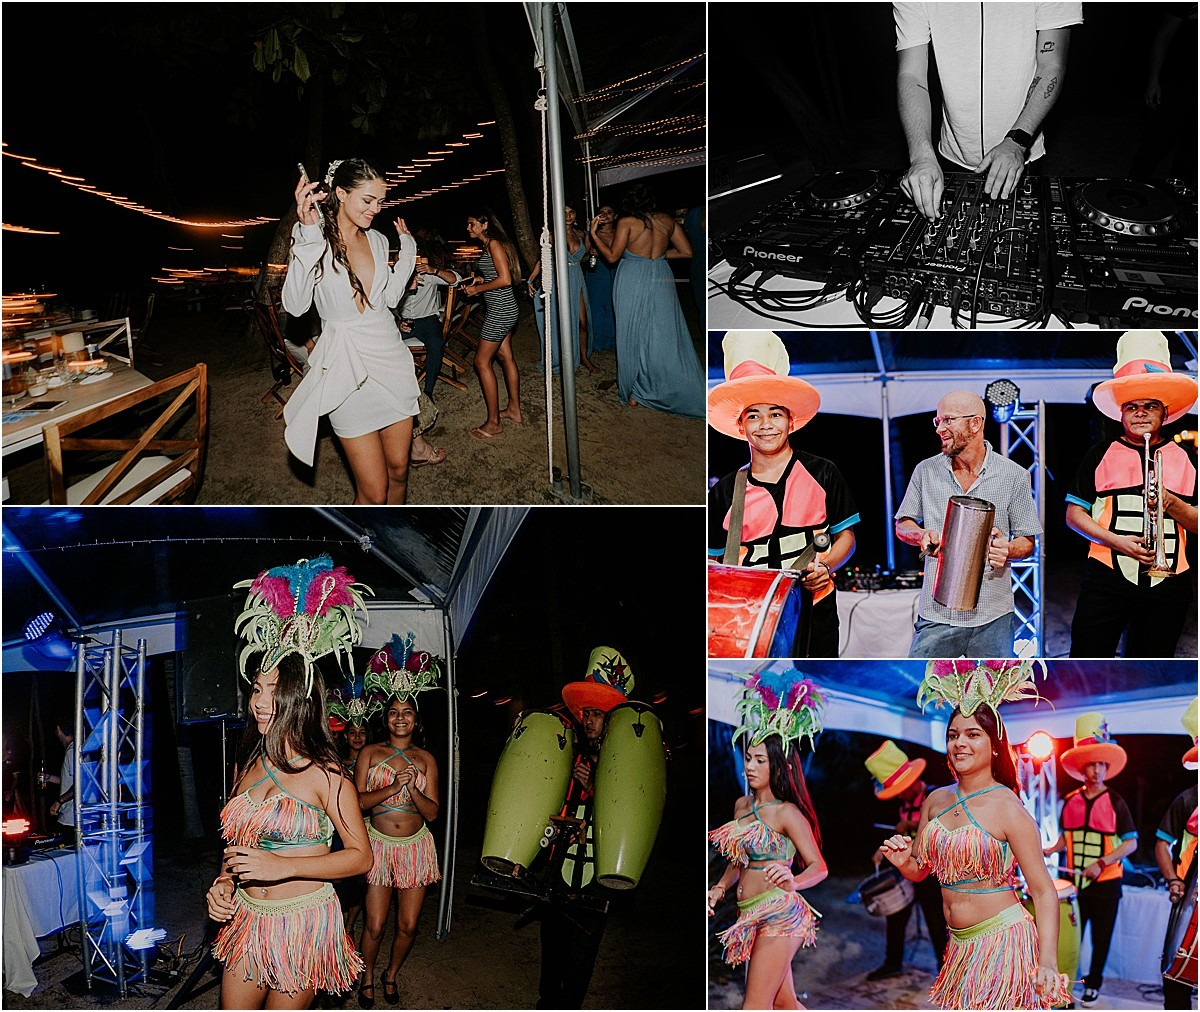 Carnivale is a group of singers dance